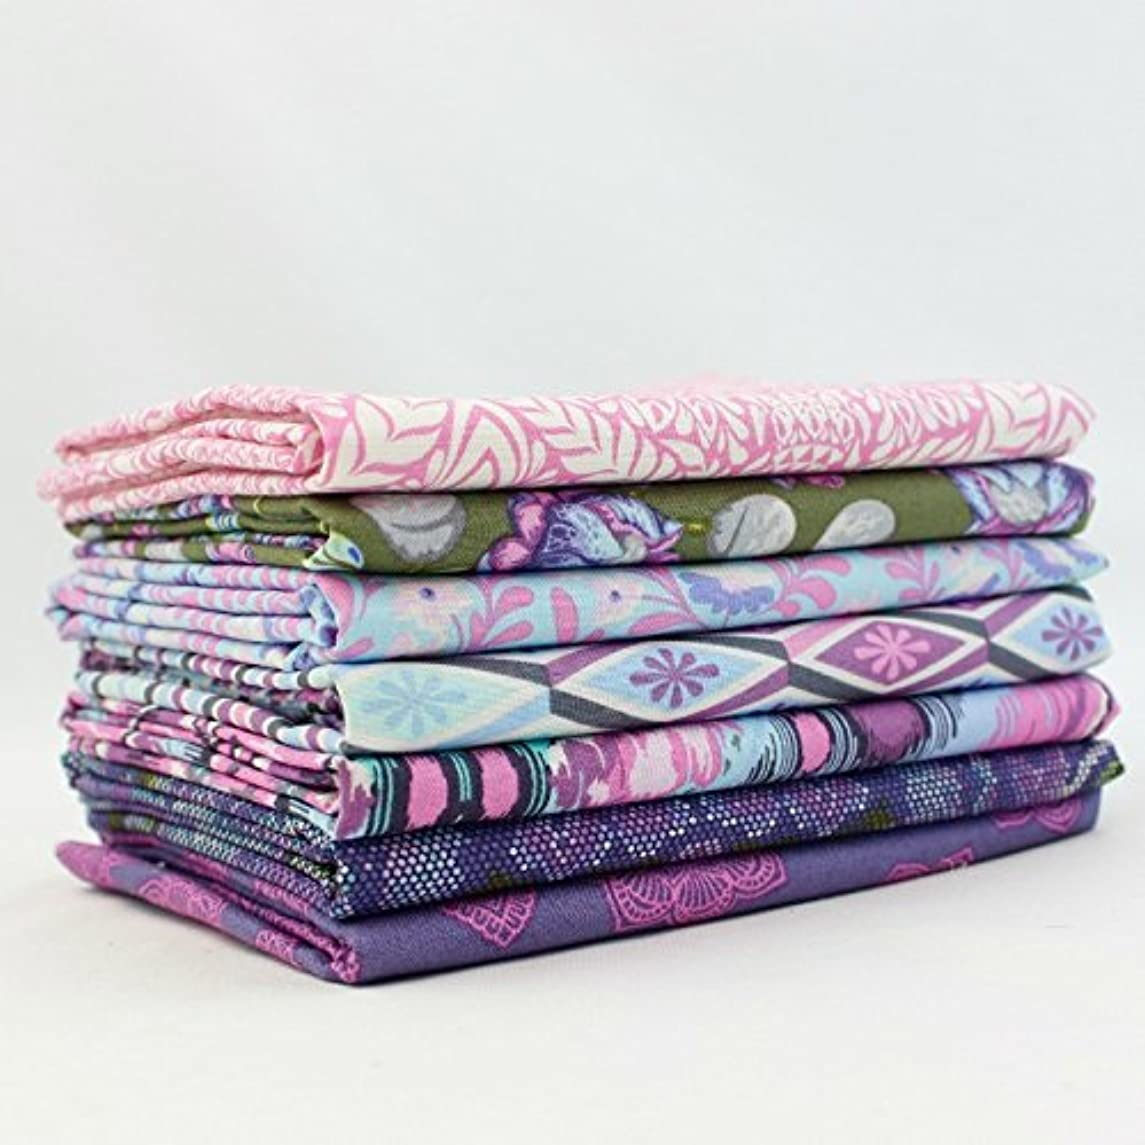 Eden Amethyst Half Yard Bundle (TP.ED.AM.7HY) by Tula Pink for Freespirit